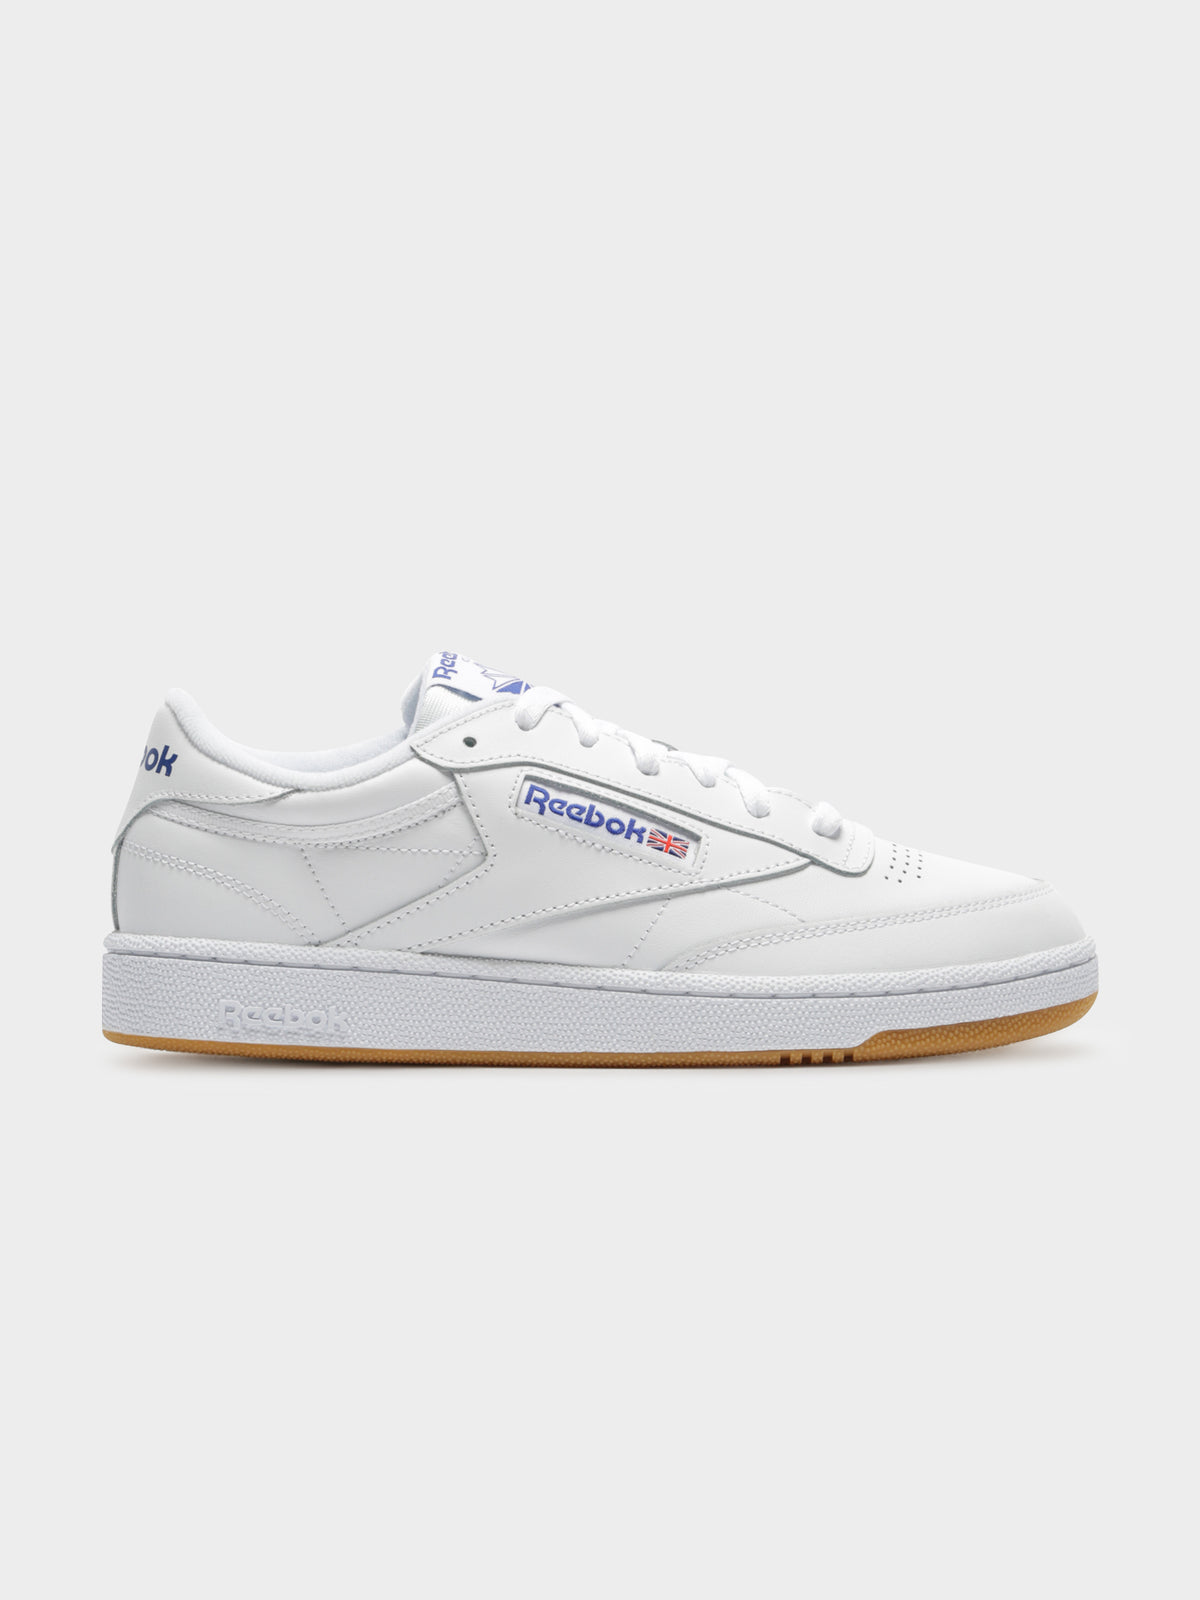 Unisex Club C 85 Sneakers in White & Blue